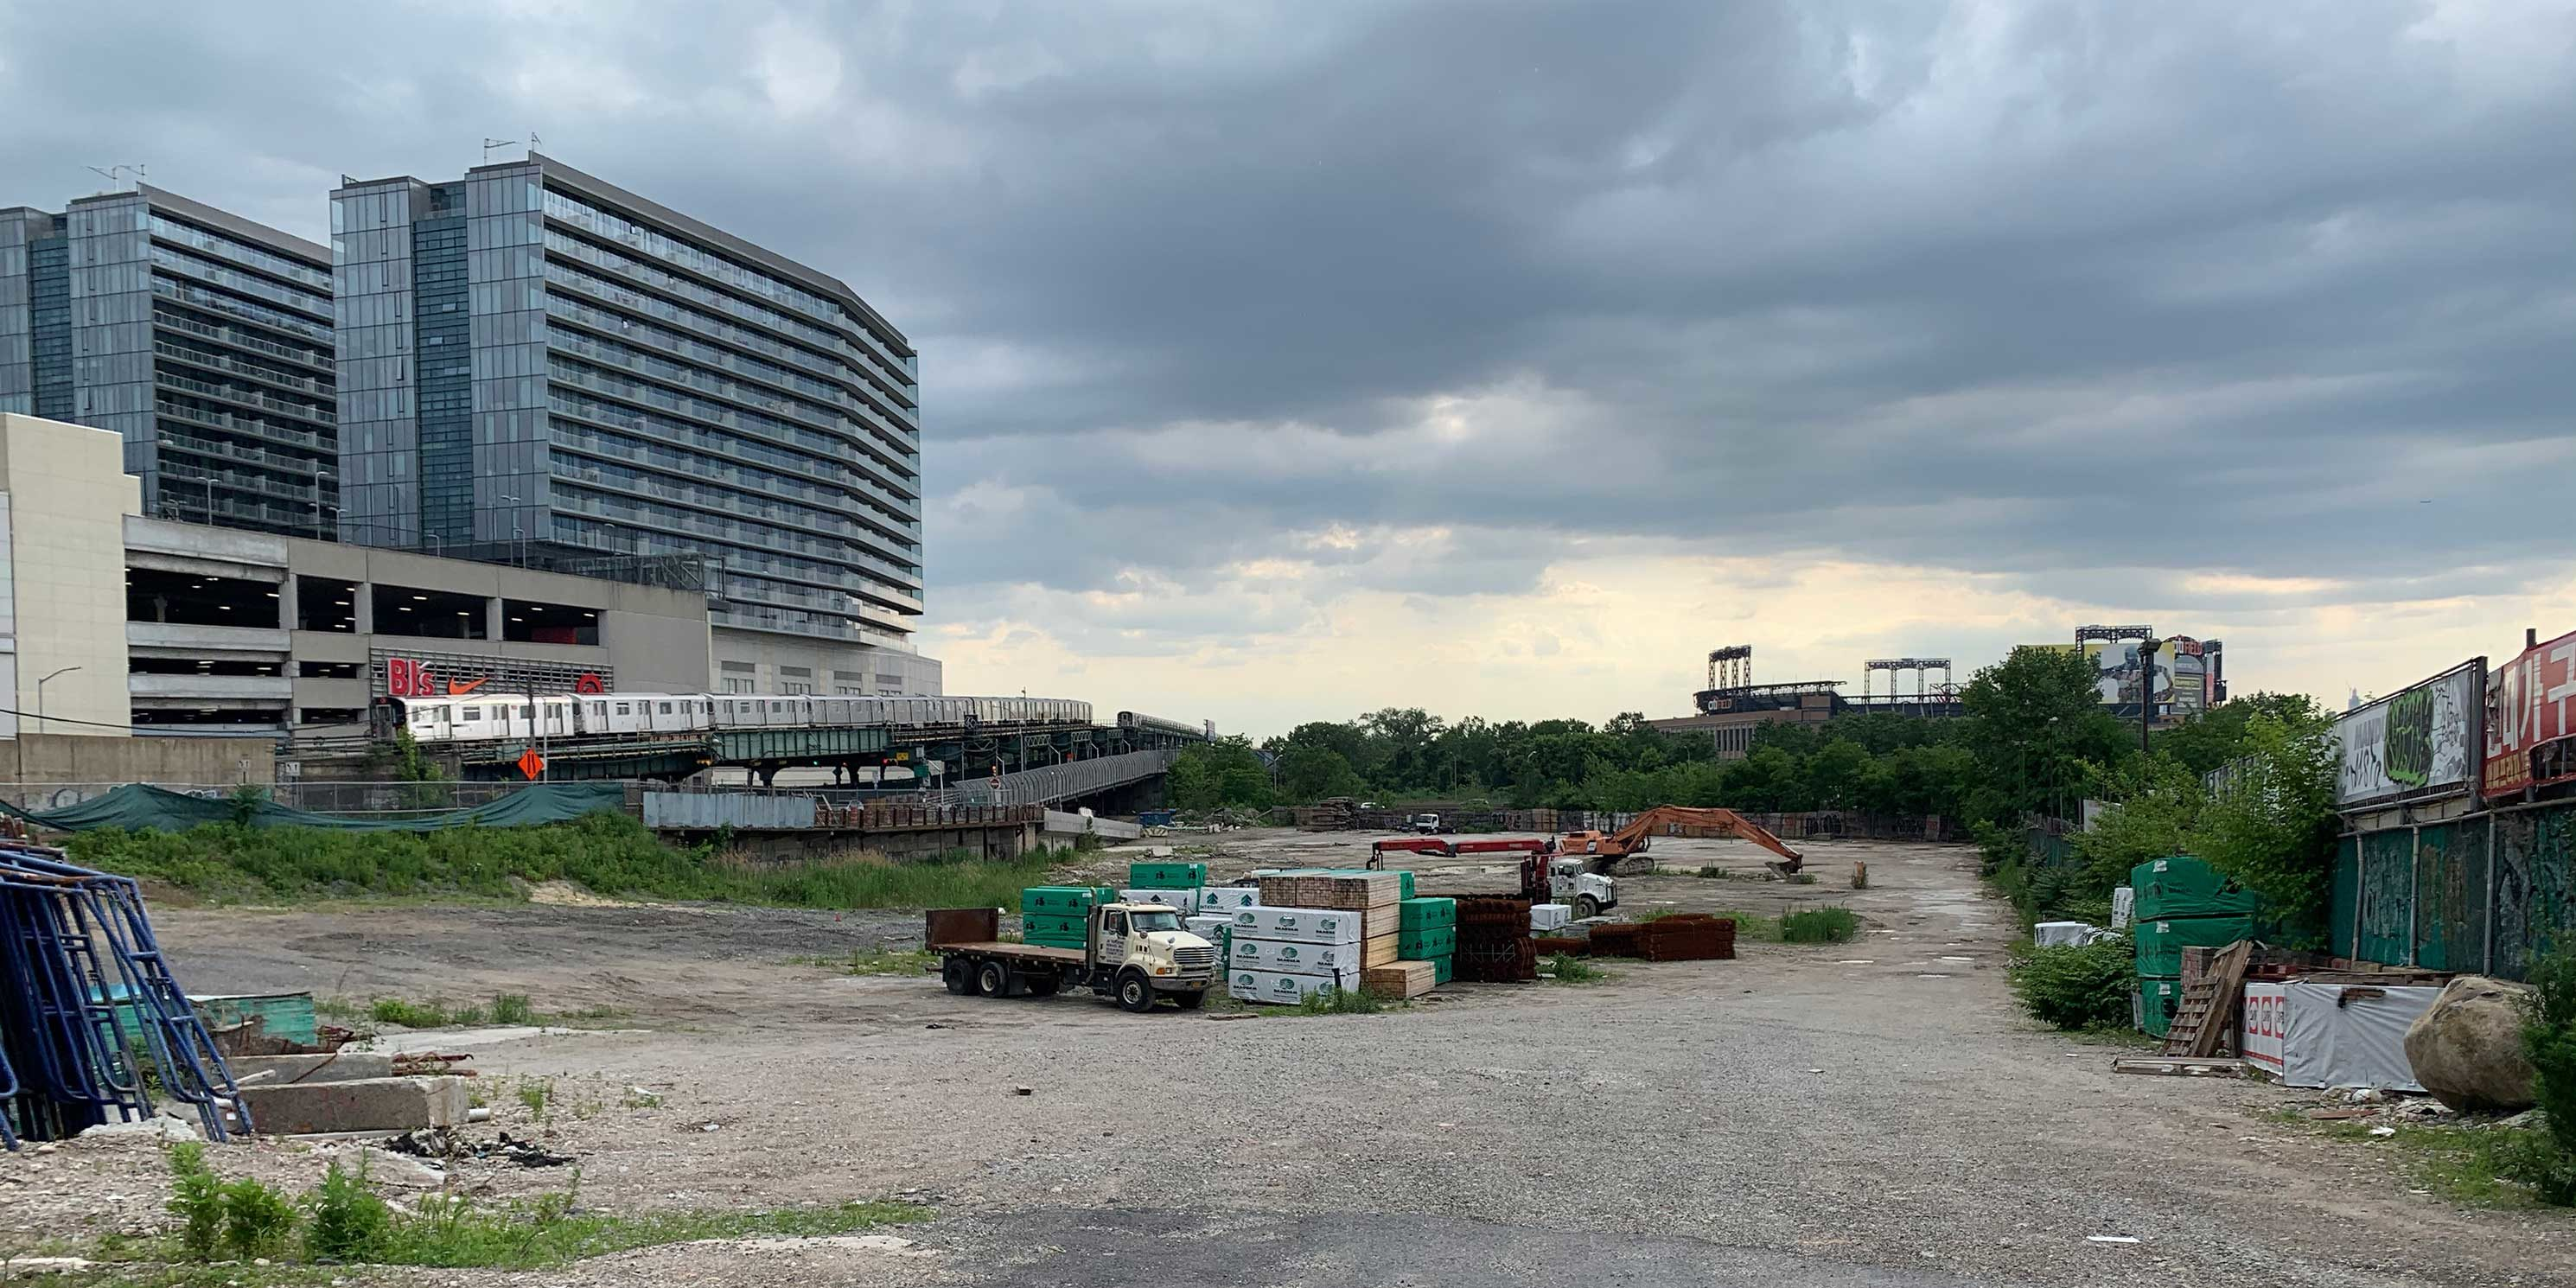 site cleared for development in Flushing, Queens